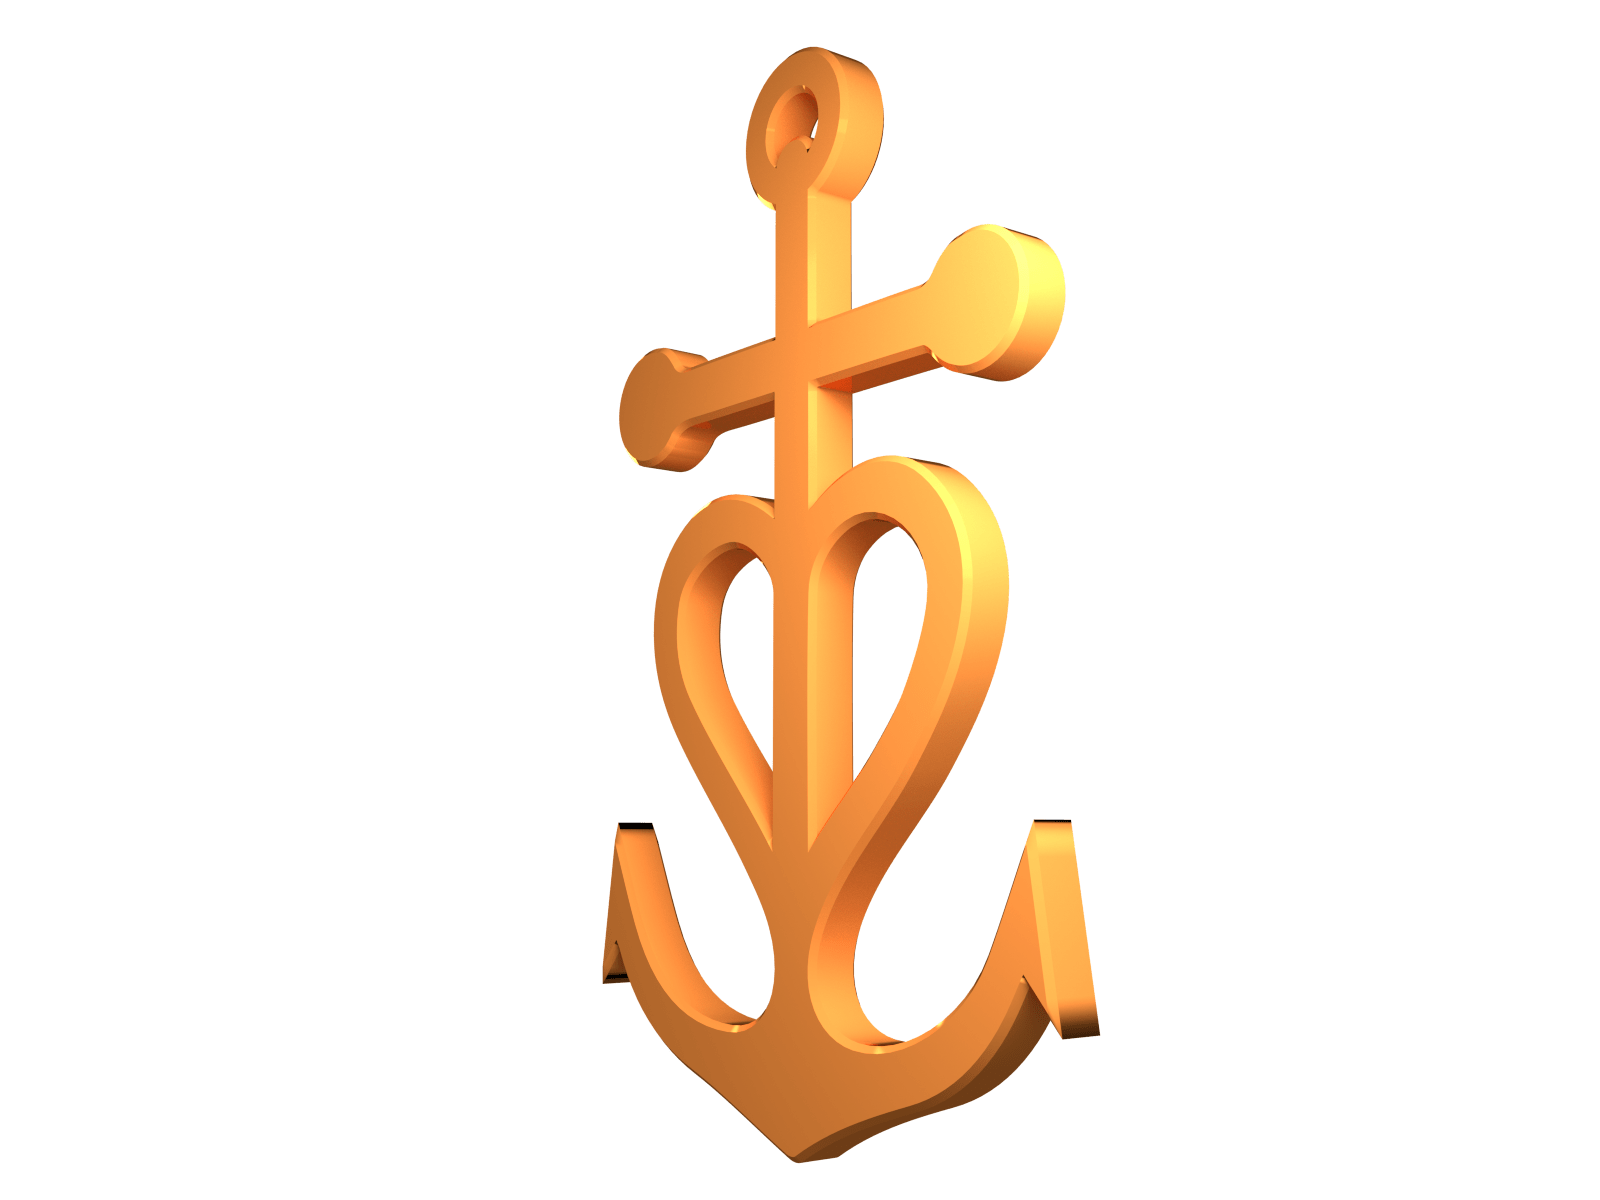 Clipart anchor thin. Christian transparent png stickpng